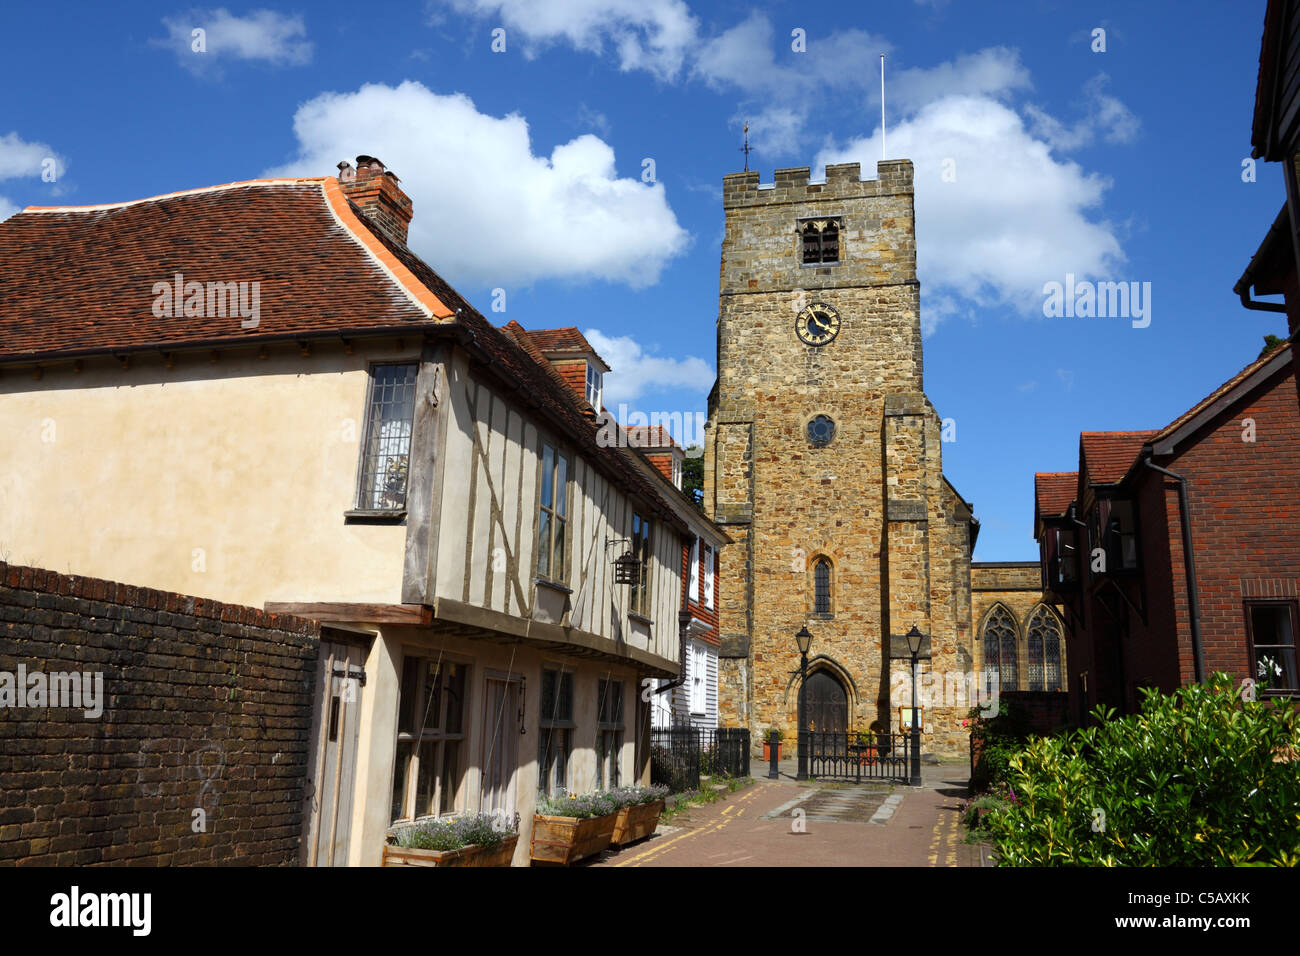 St Peter & St Paul parish church, Tonbridge, Kent, England - Stock Image